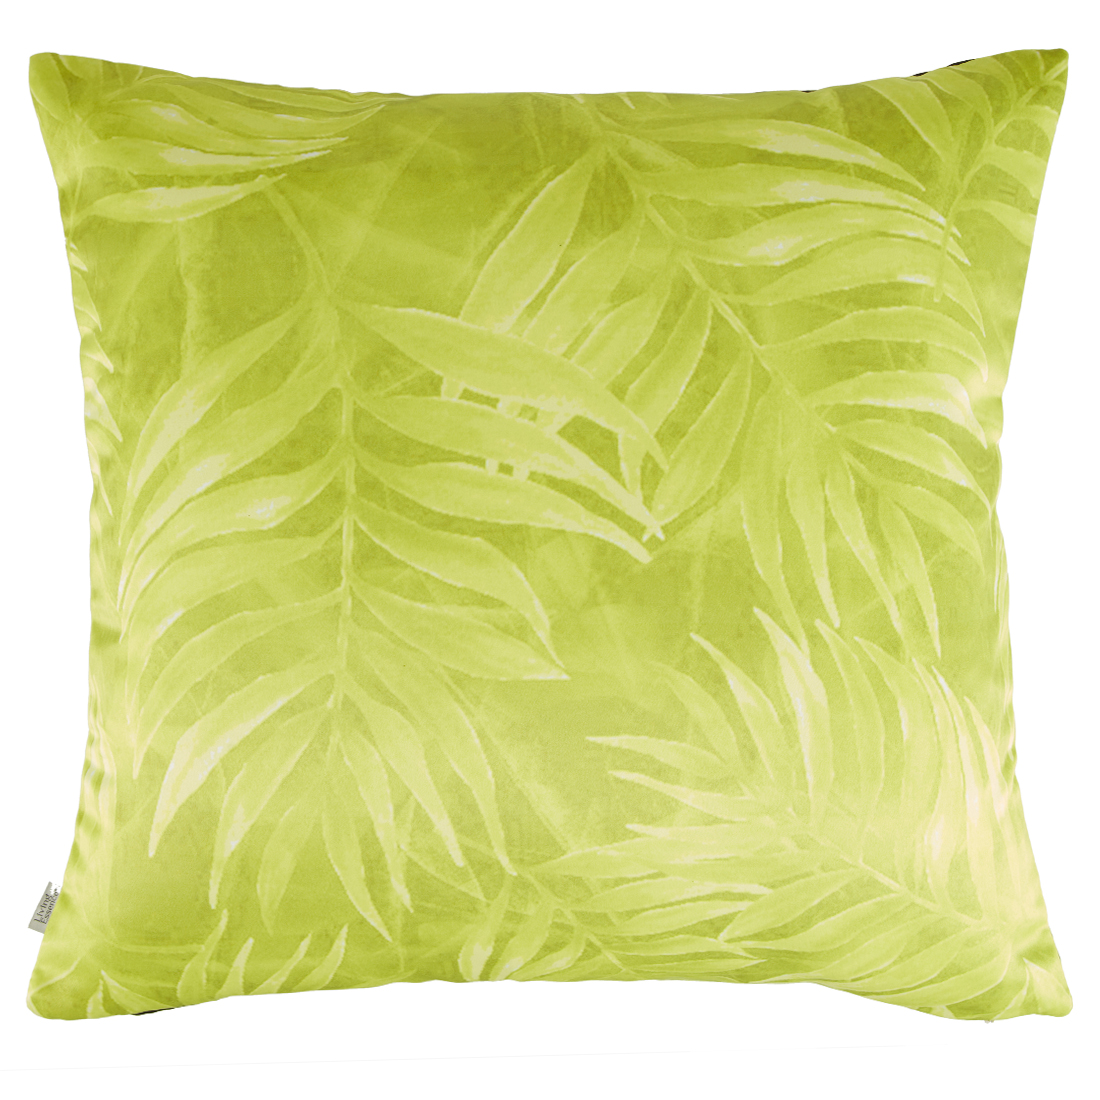 Digital Cushion Cover Vintage Flora Black Cushion Covers in Poly Satin Colour by Living Essence